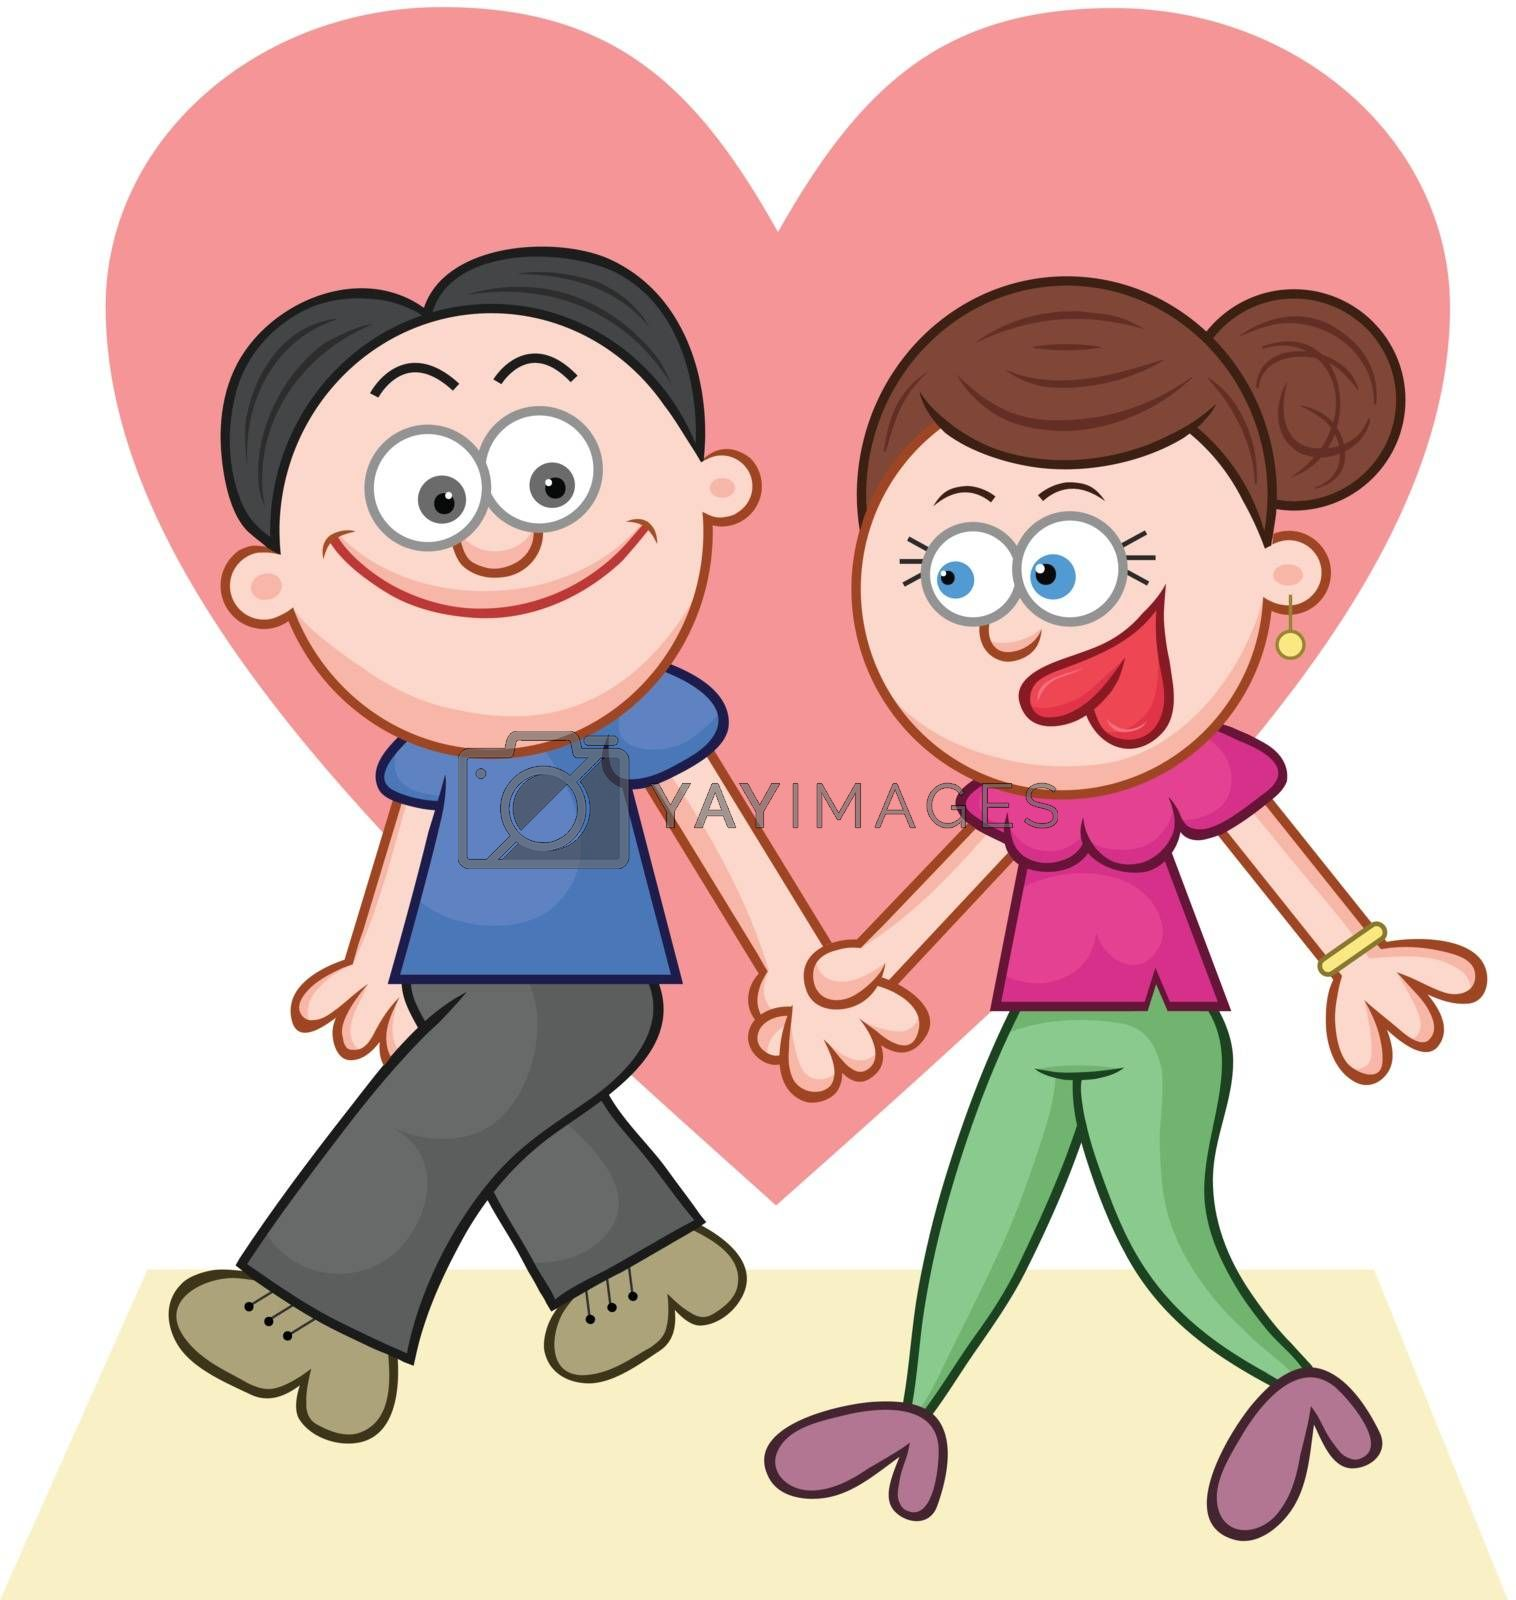 Cartoon couple holding hands and walking with big love heart.